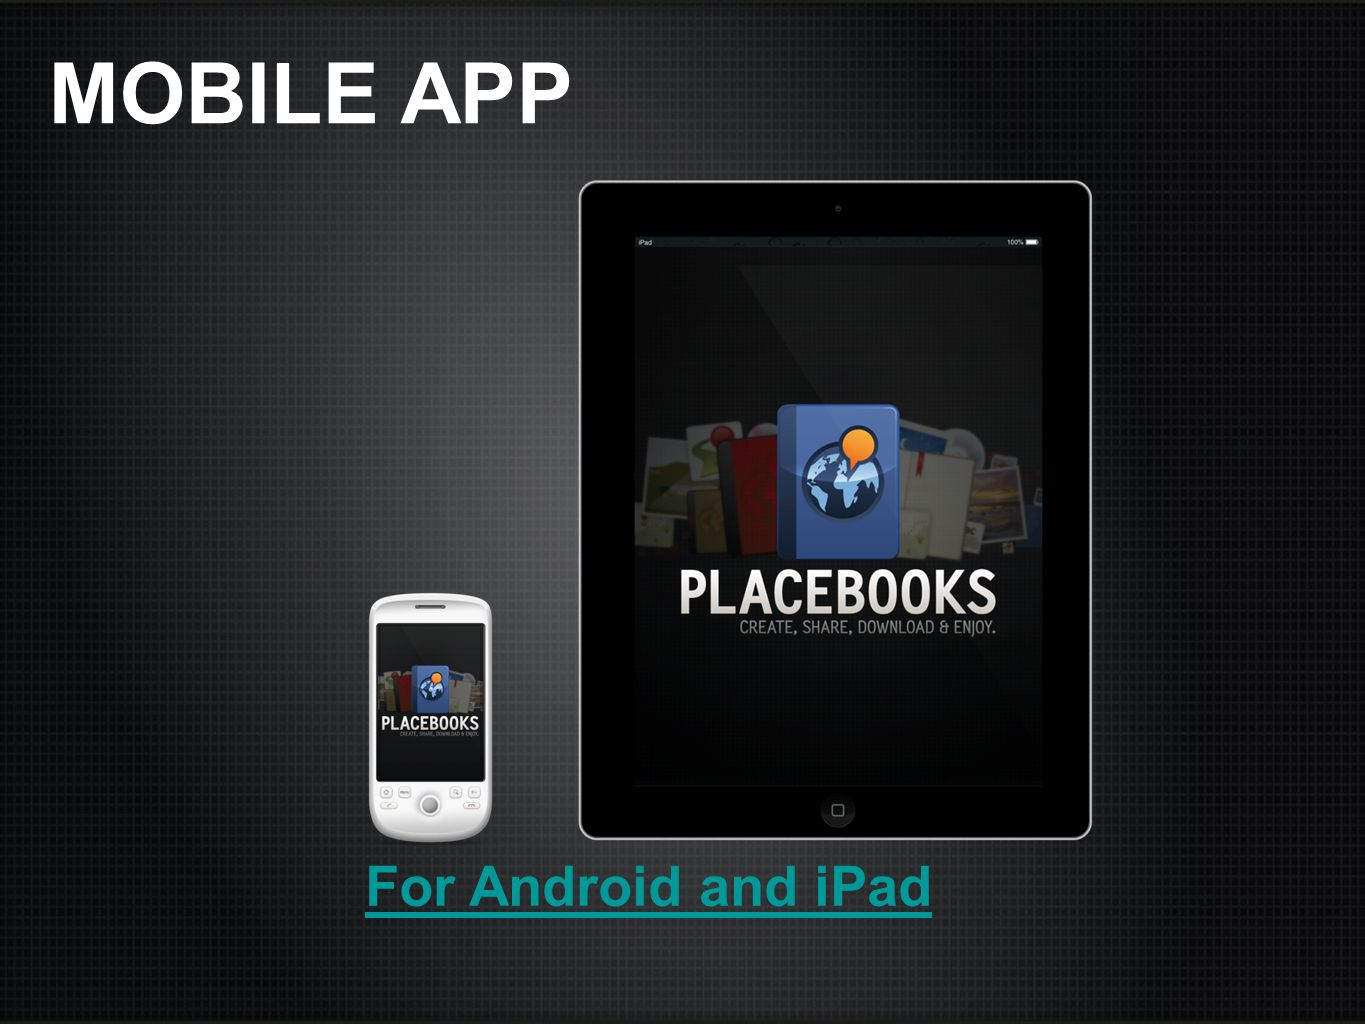 MOBILE APP For Android and iPad